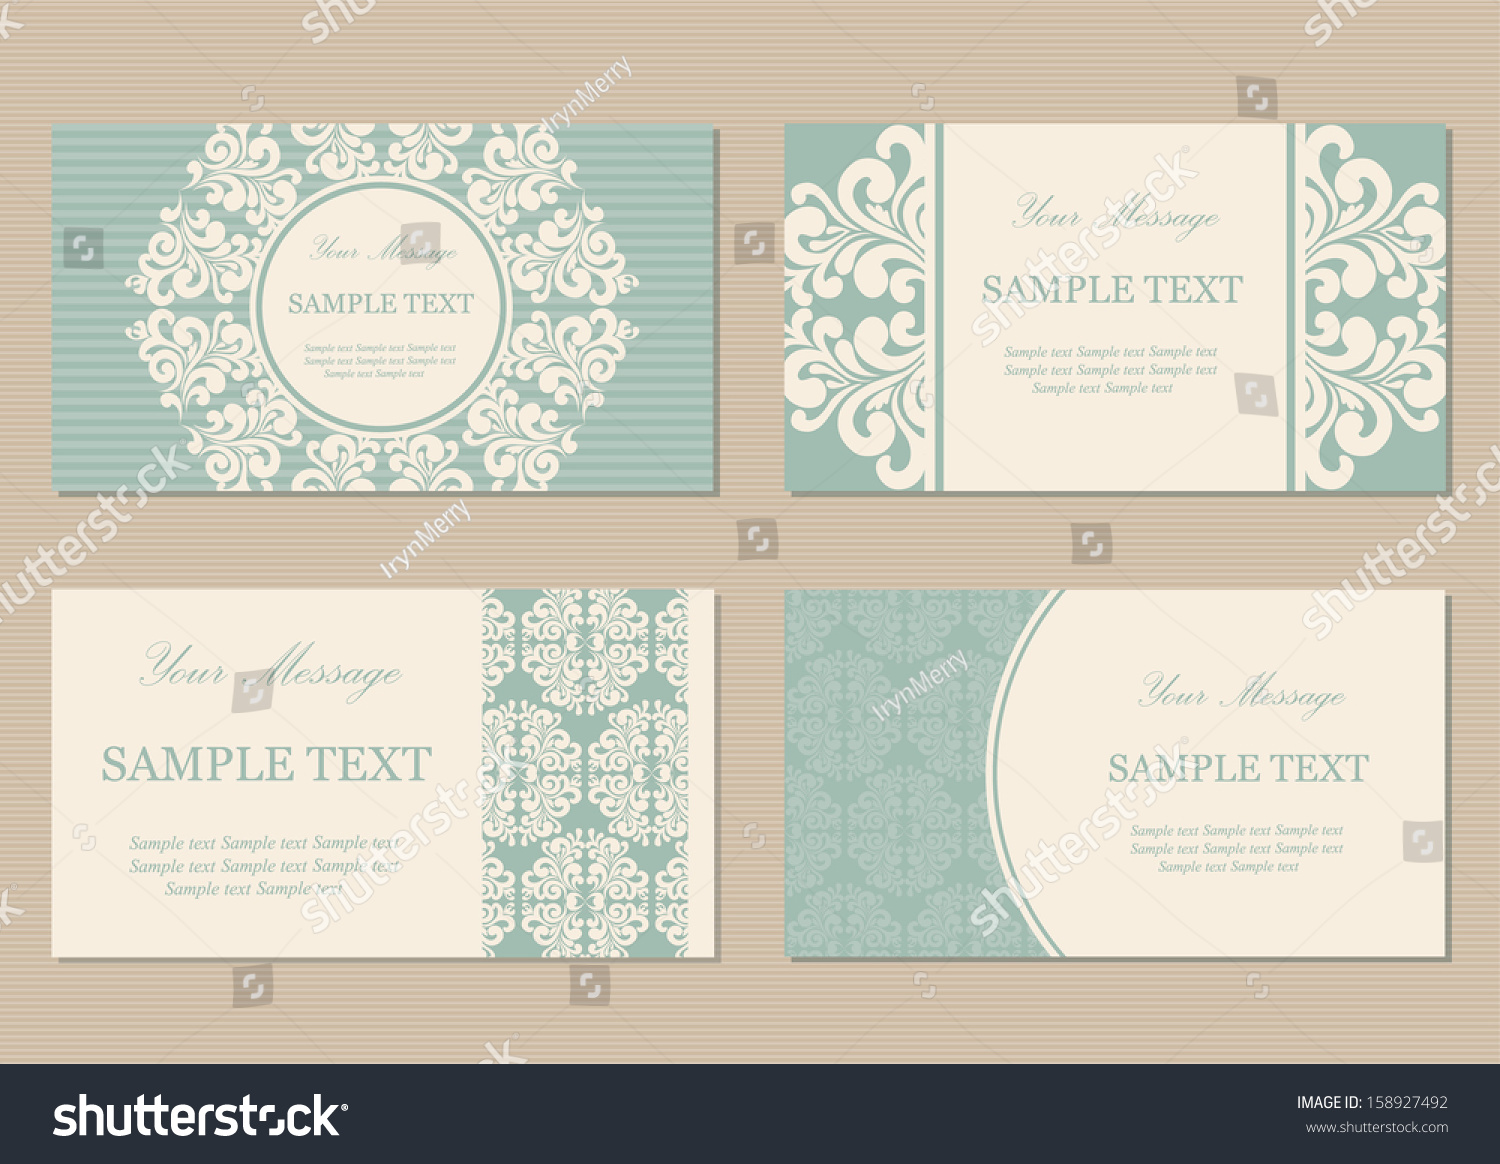 Floral Vintage Business Invitation Cards Stock Vector 158927492 ...